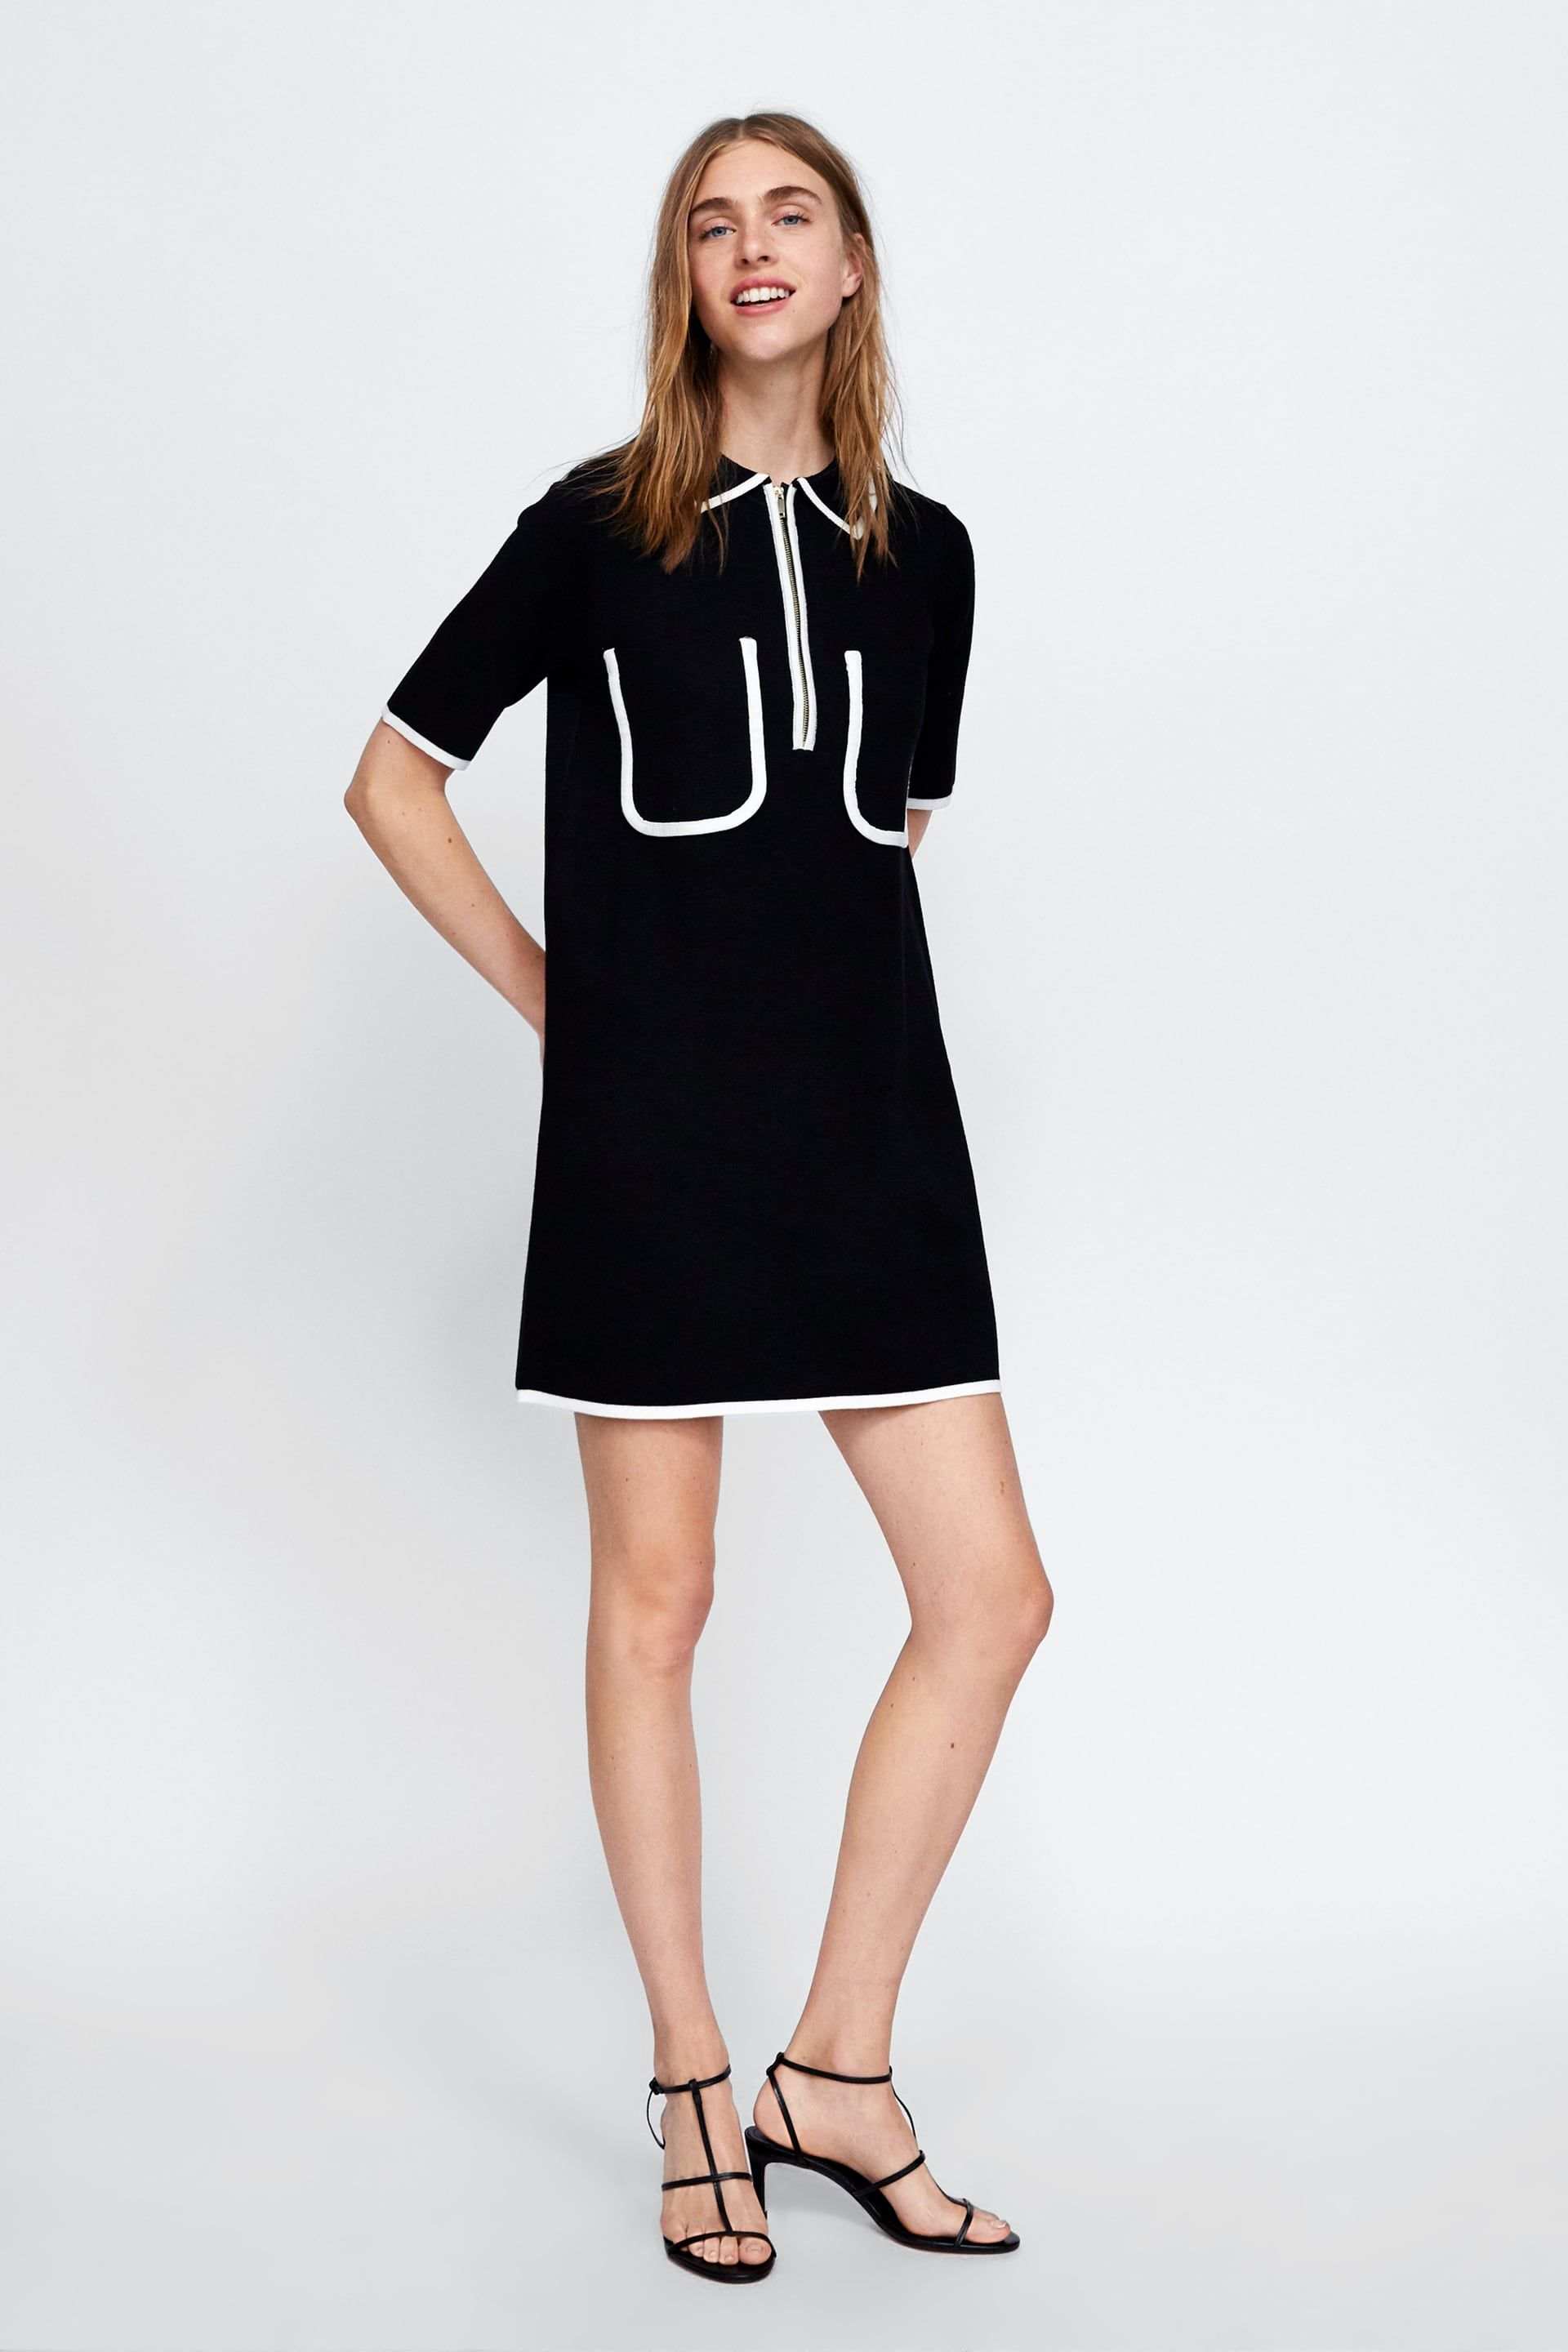 83fbd735 Image 1 of POLO-STYLE DRESS WITH CONTRASTING TRIMS from Zara ...